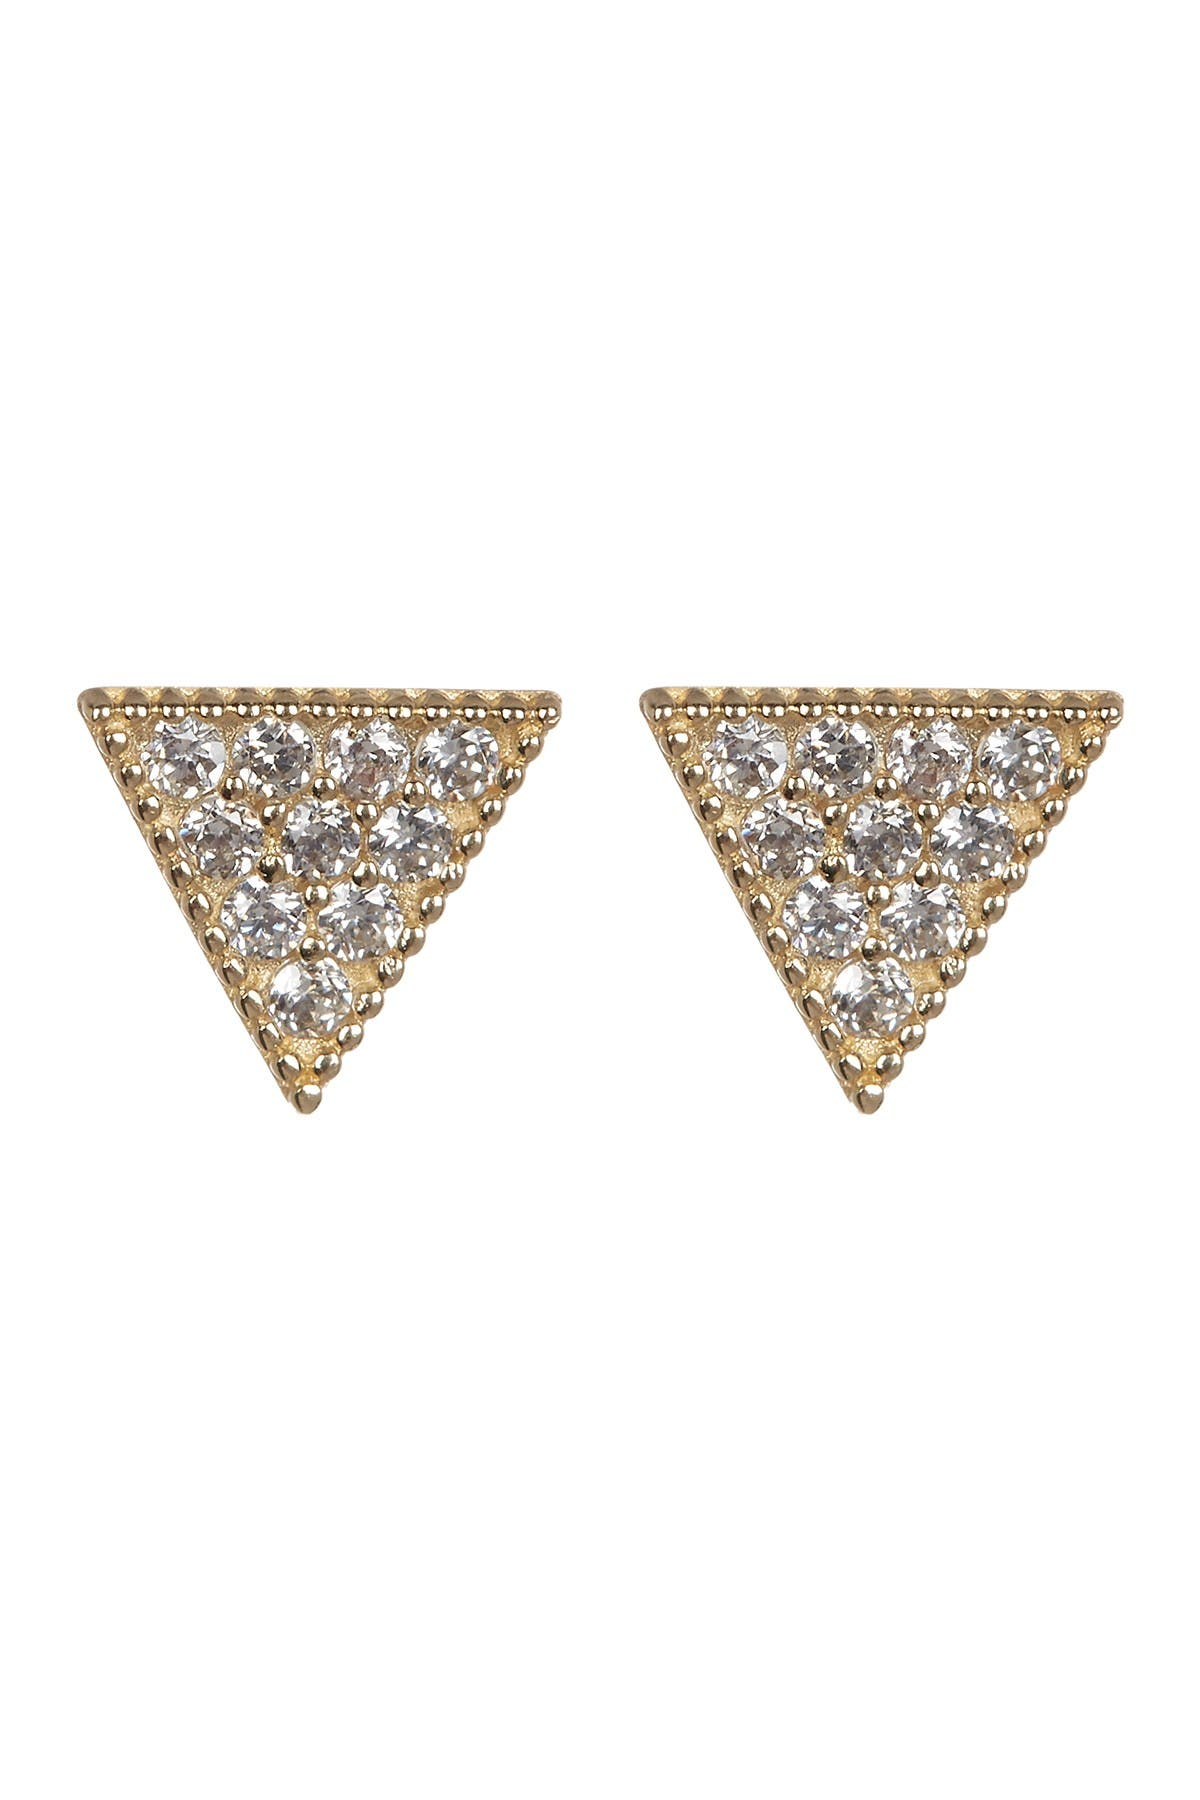 Triangle CZ Pave Earrings,Pave Cubic Zirconia Hollow Triangle Pendants With Cubic Zirconia Charm In Center,24 K Gold Filled Ear Wires,1 12